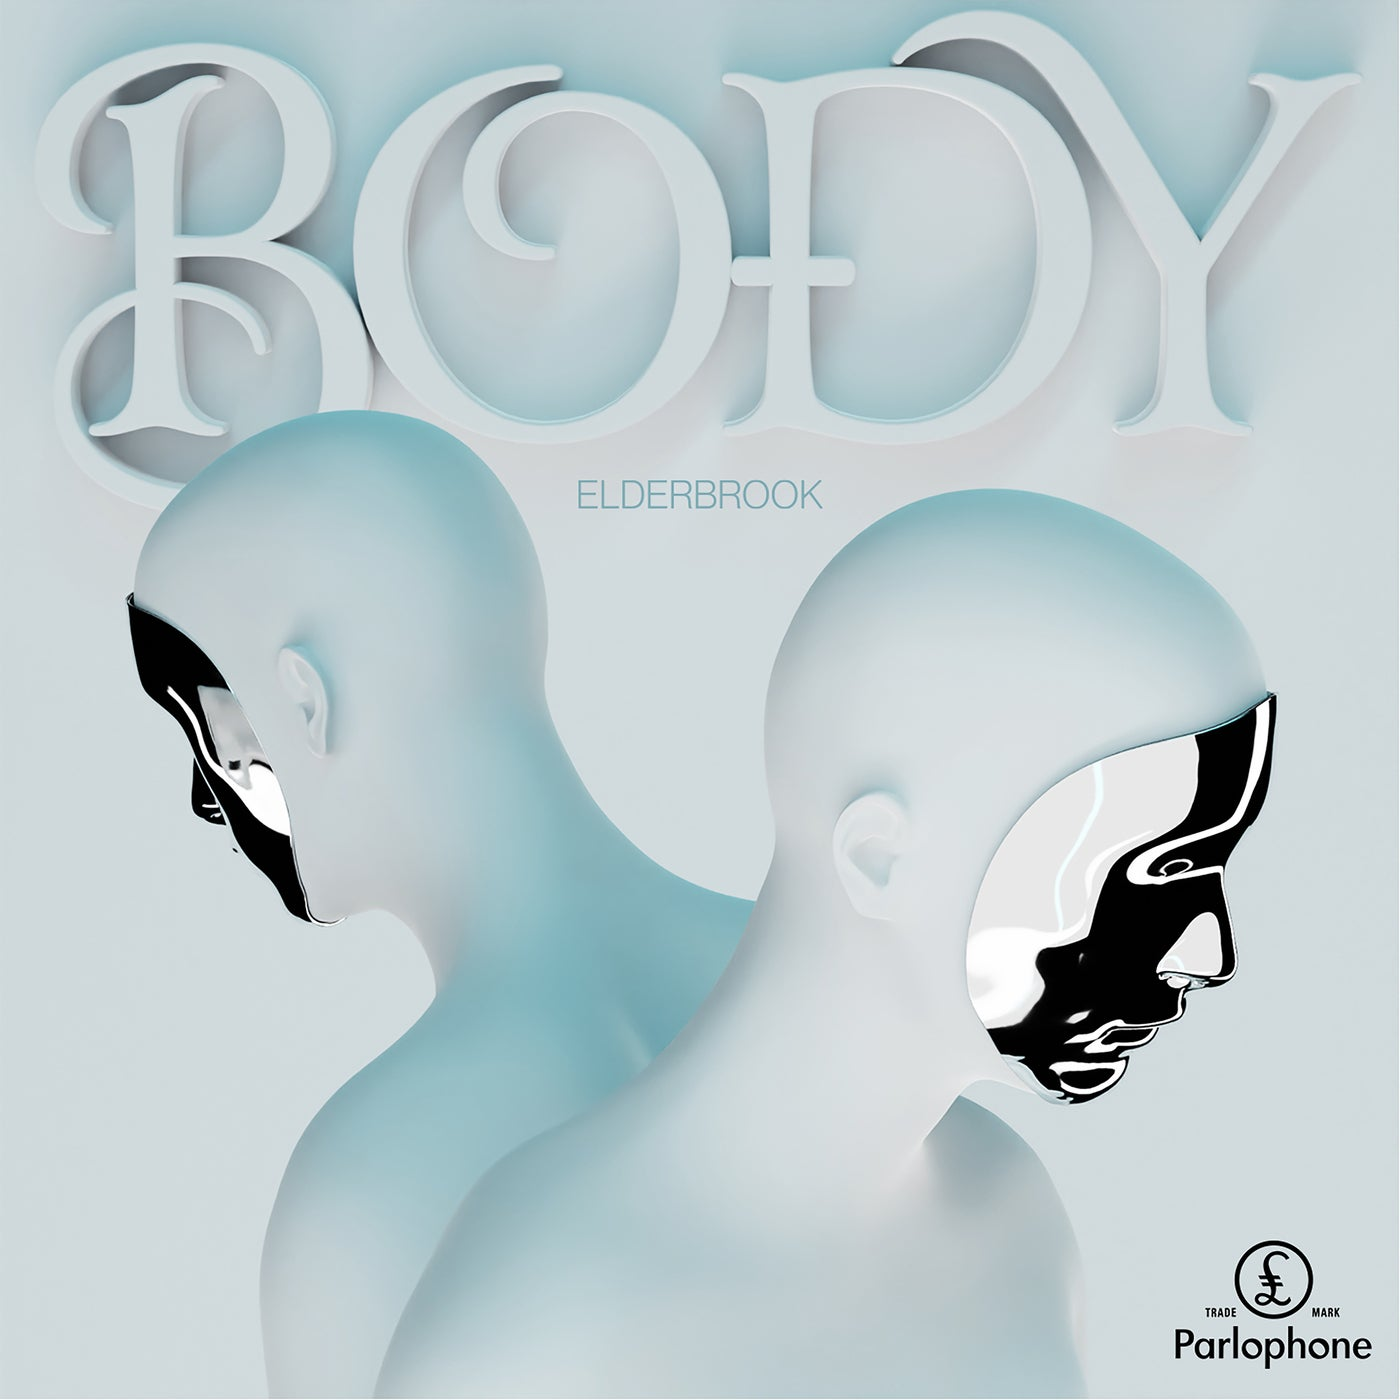 Body (Original Mix)